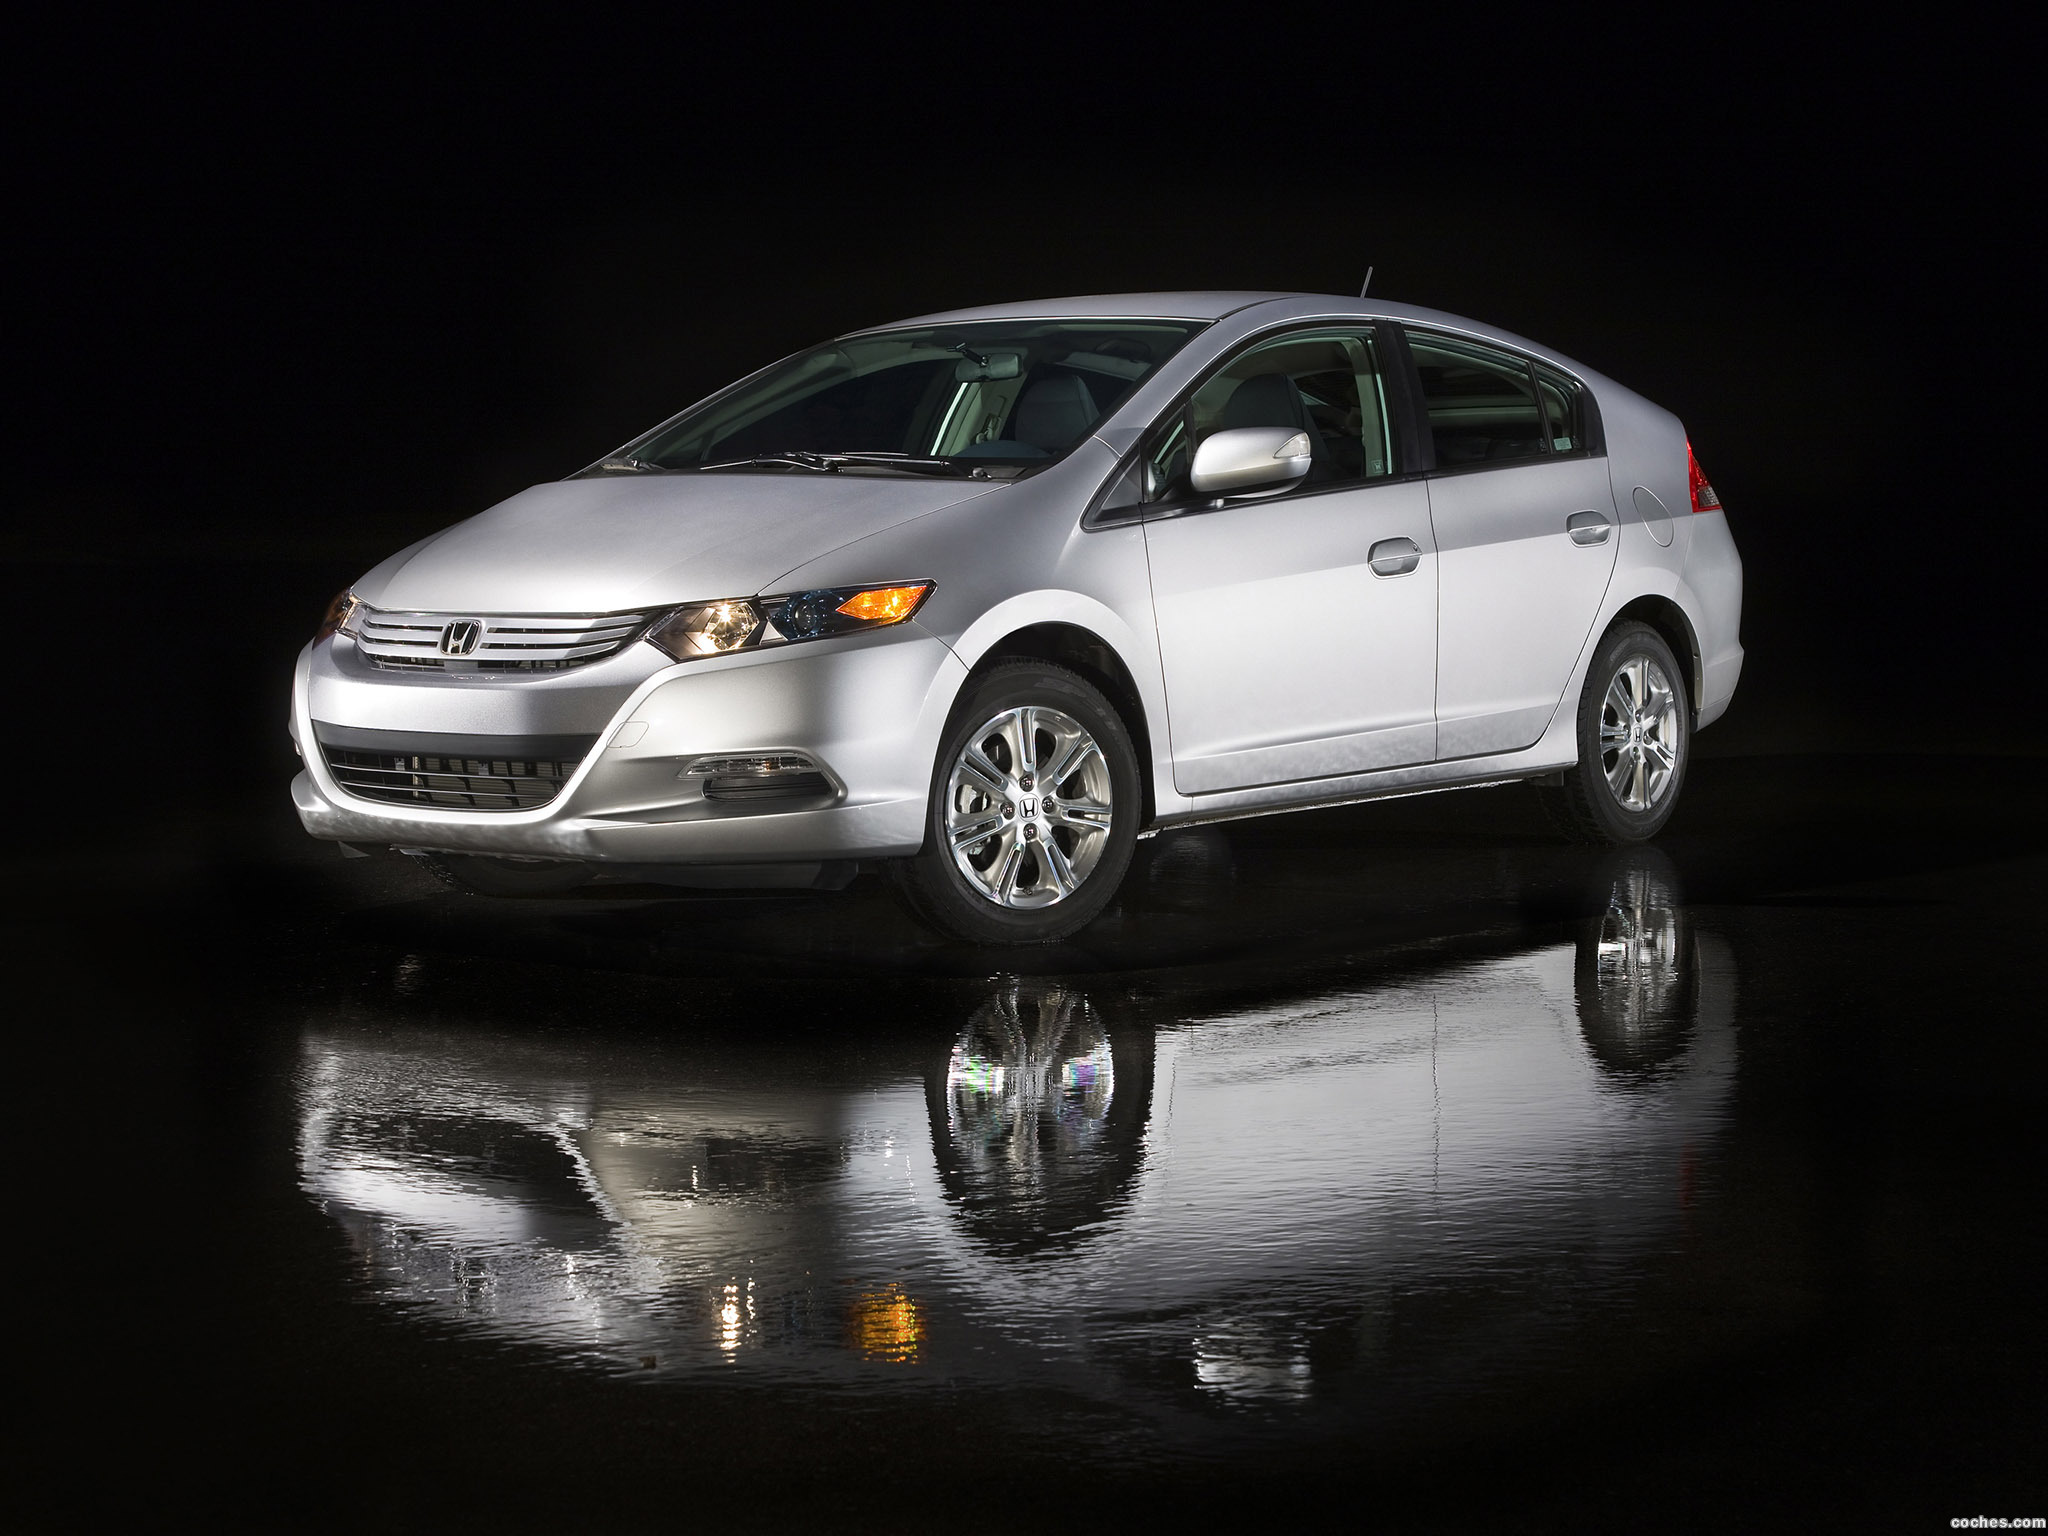 Foto 45 de Honda Insight 2009